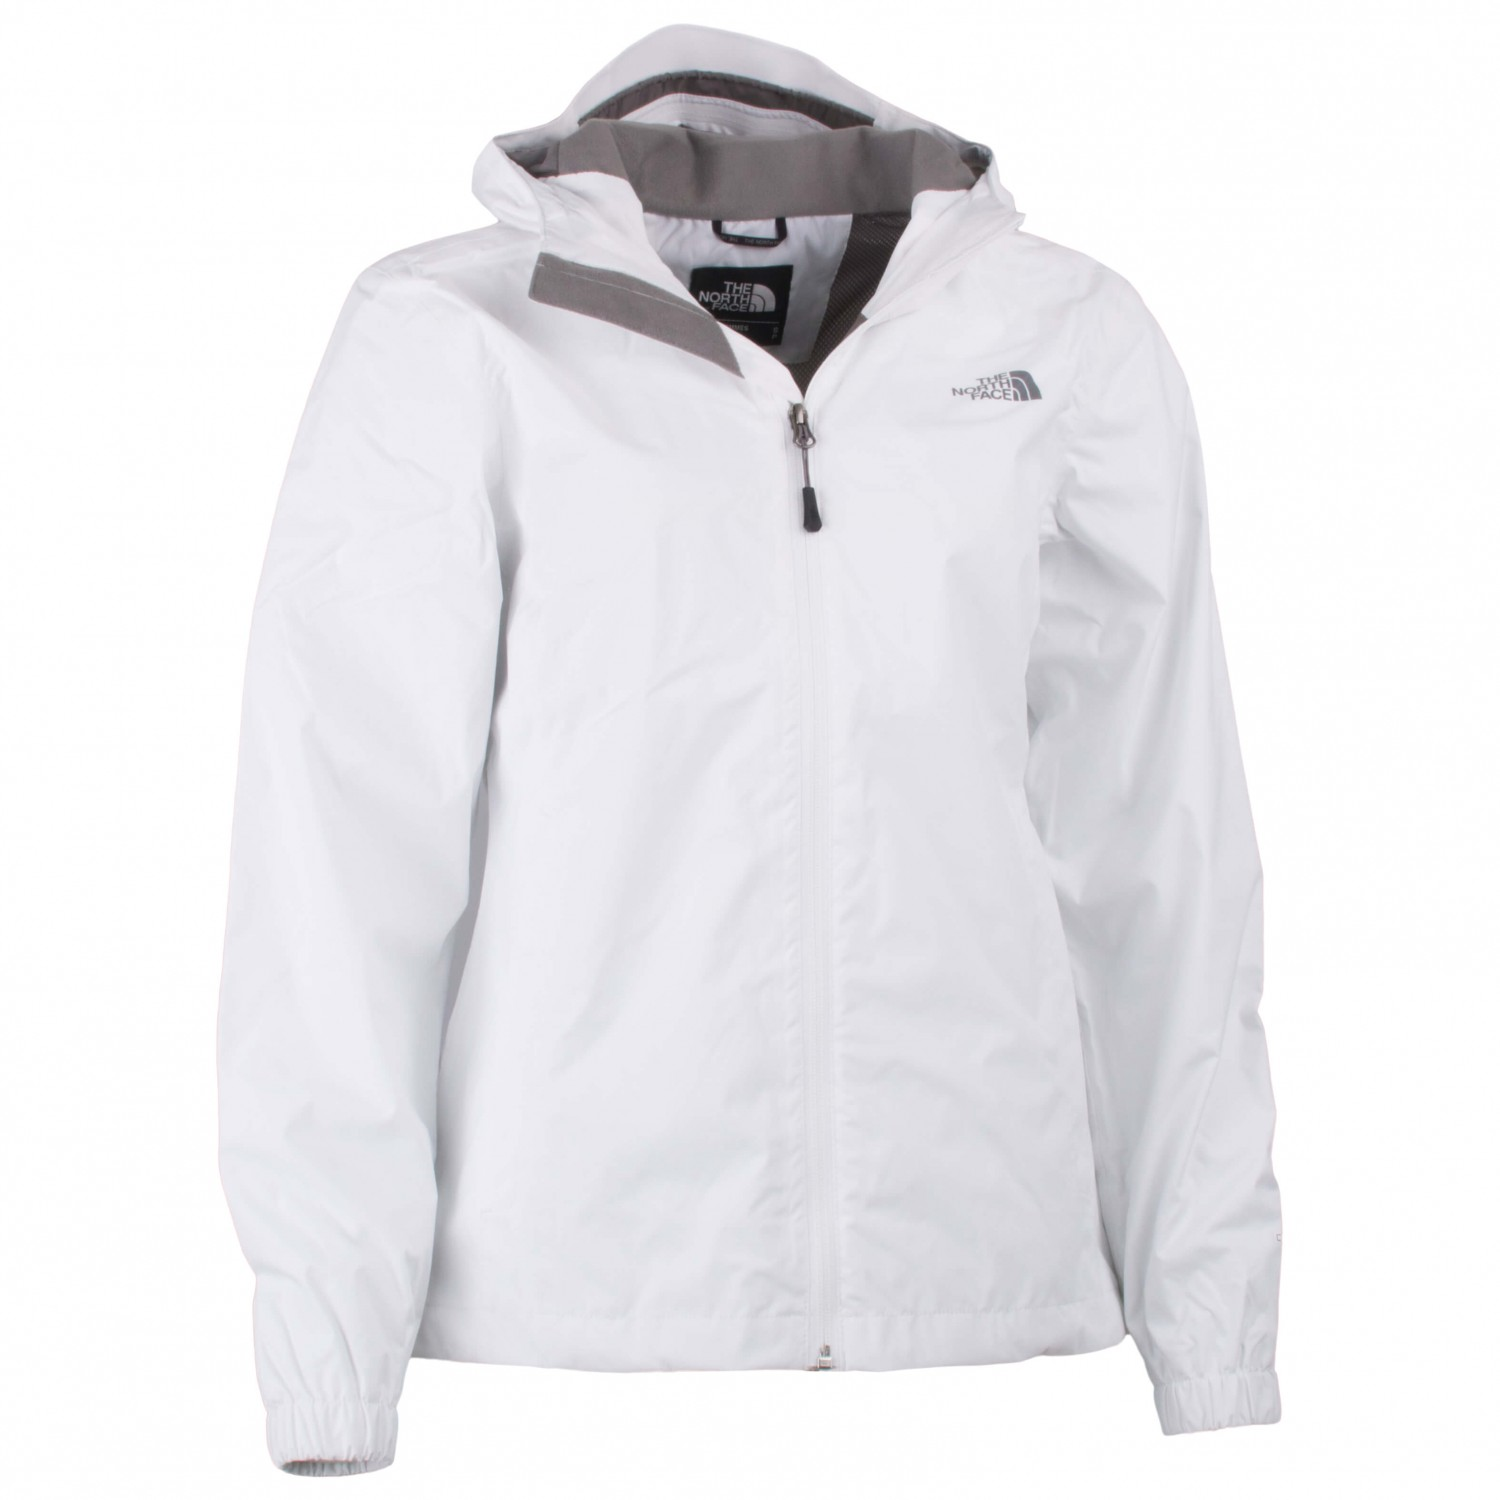 Porto Antipioggia Giacca Quest The Jacket North Face Donna A1OwqF 2b75d358e3e6